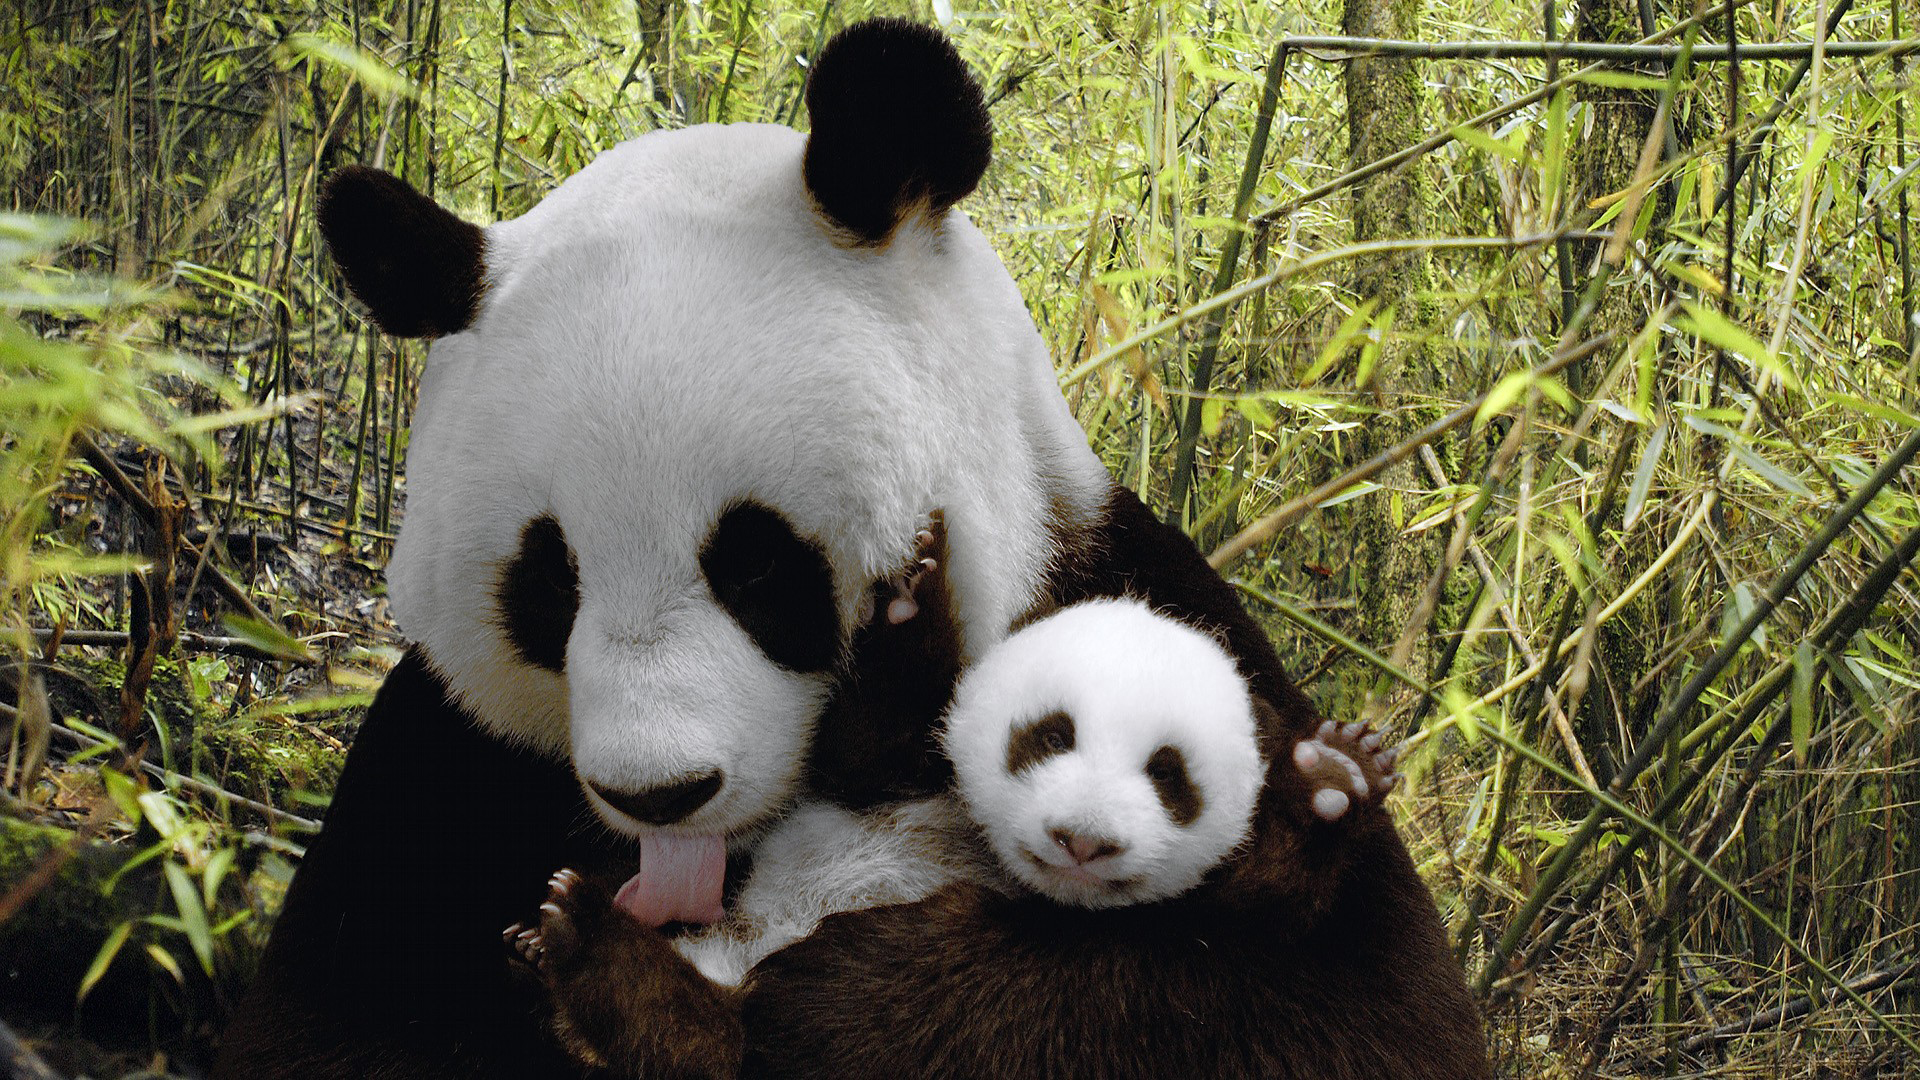 48292 download wallpaper Animals, Pandas screensavers and pictures for free